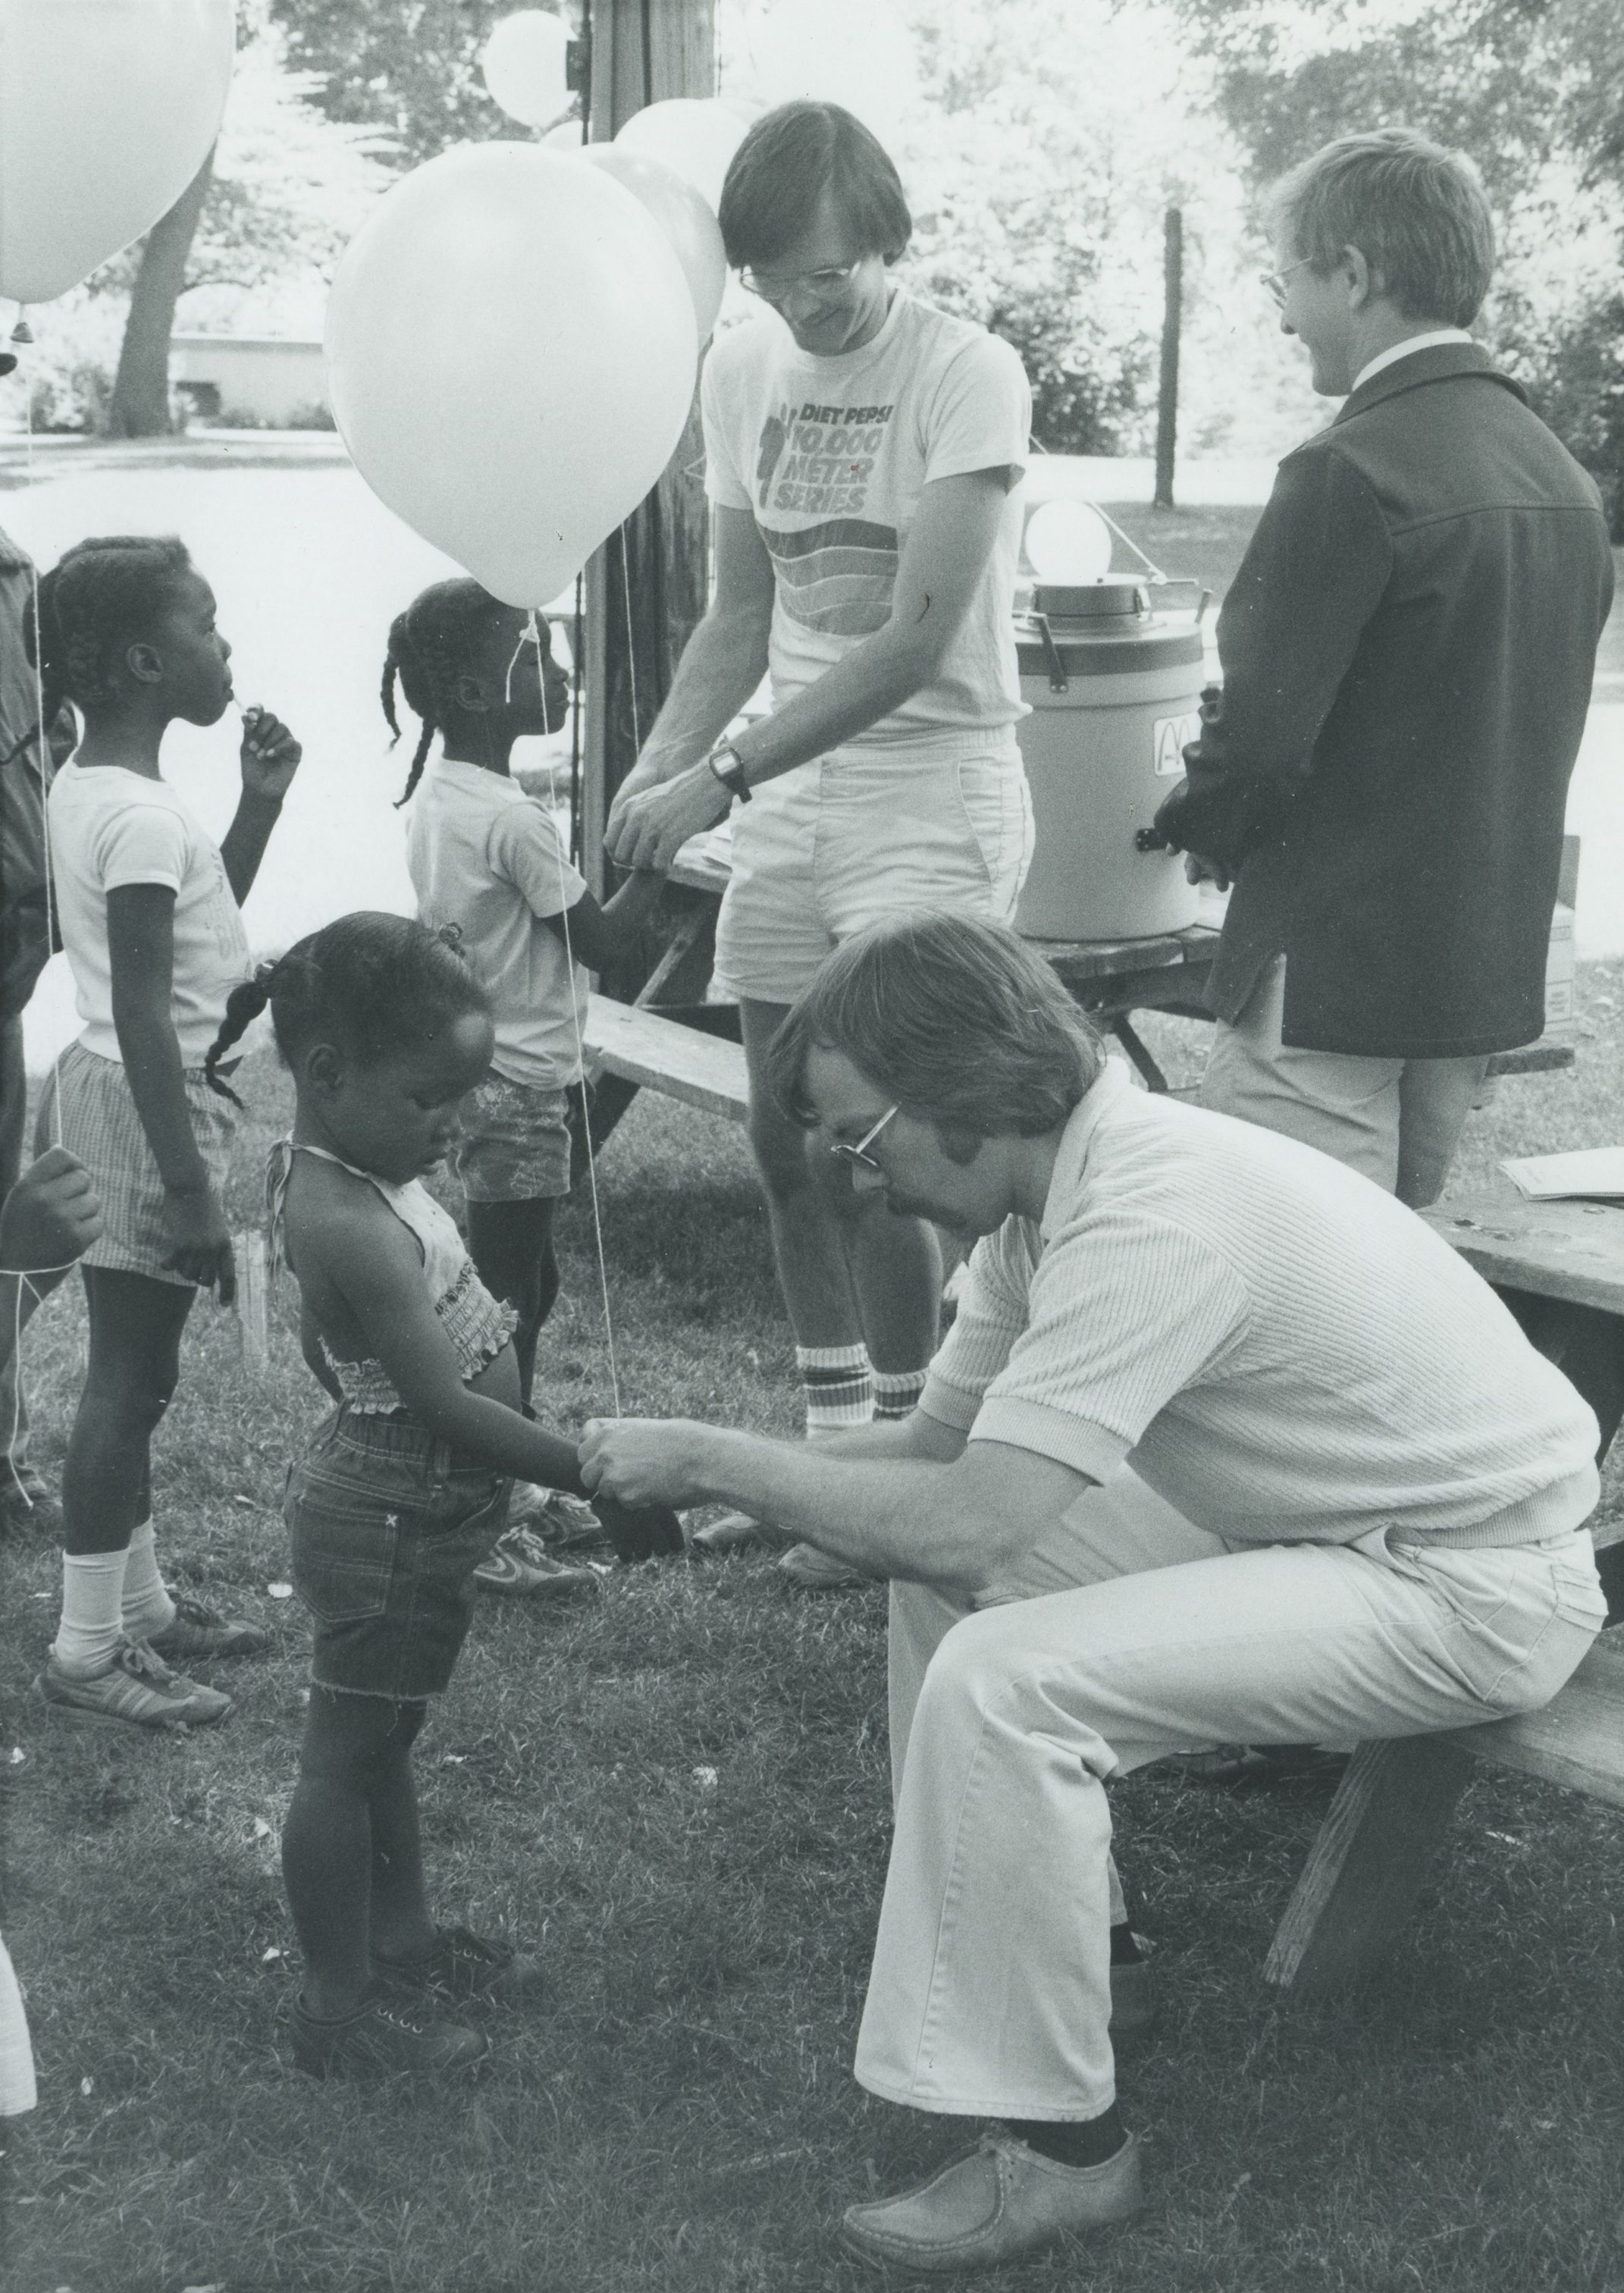 Participants in a street festival run by the Midtown Neighborhood Association in May 1985.